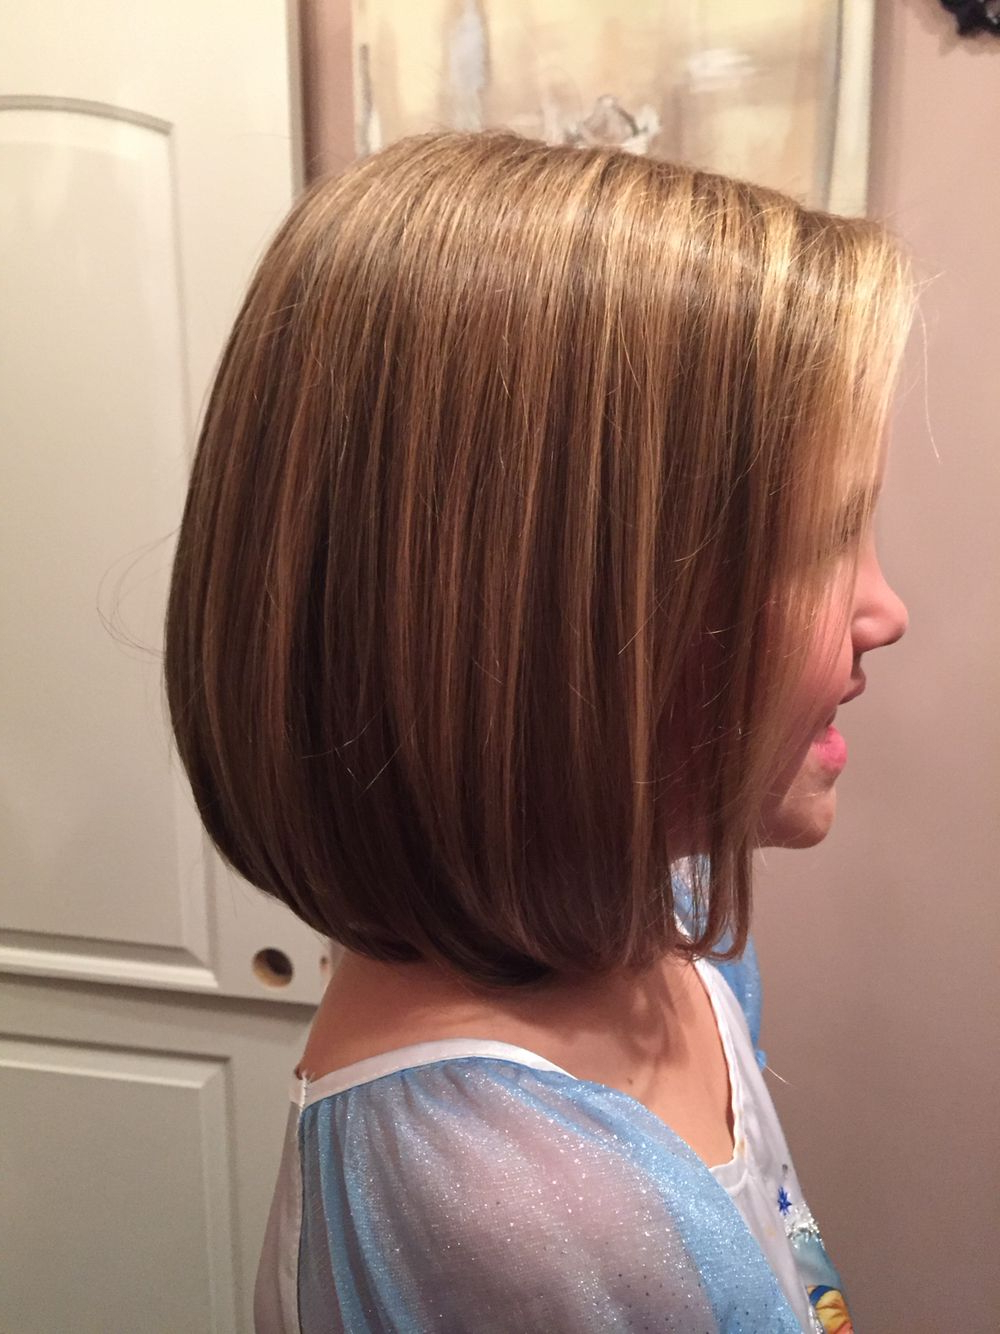 Little Girls Bob Haircut | Hair & Beauty | Pinterest | Girl Haircuts With Little Girl Short Hairstyles Pictures (View 5 of 25)